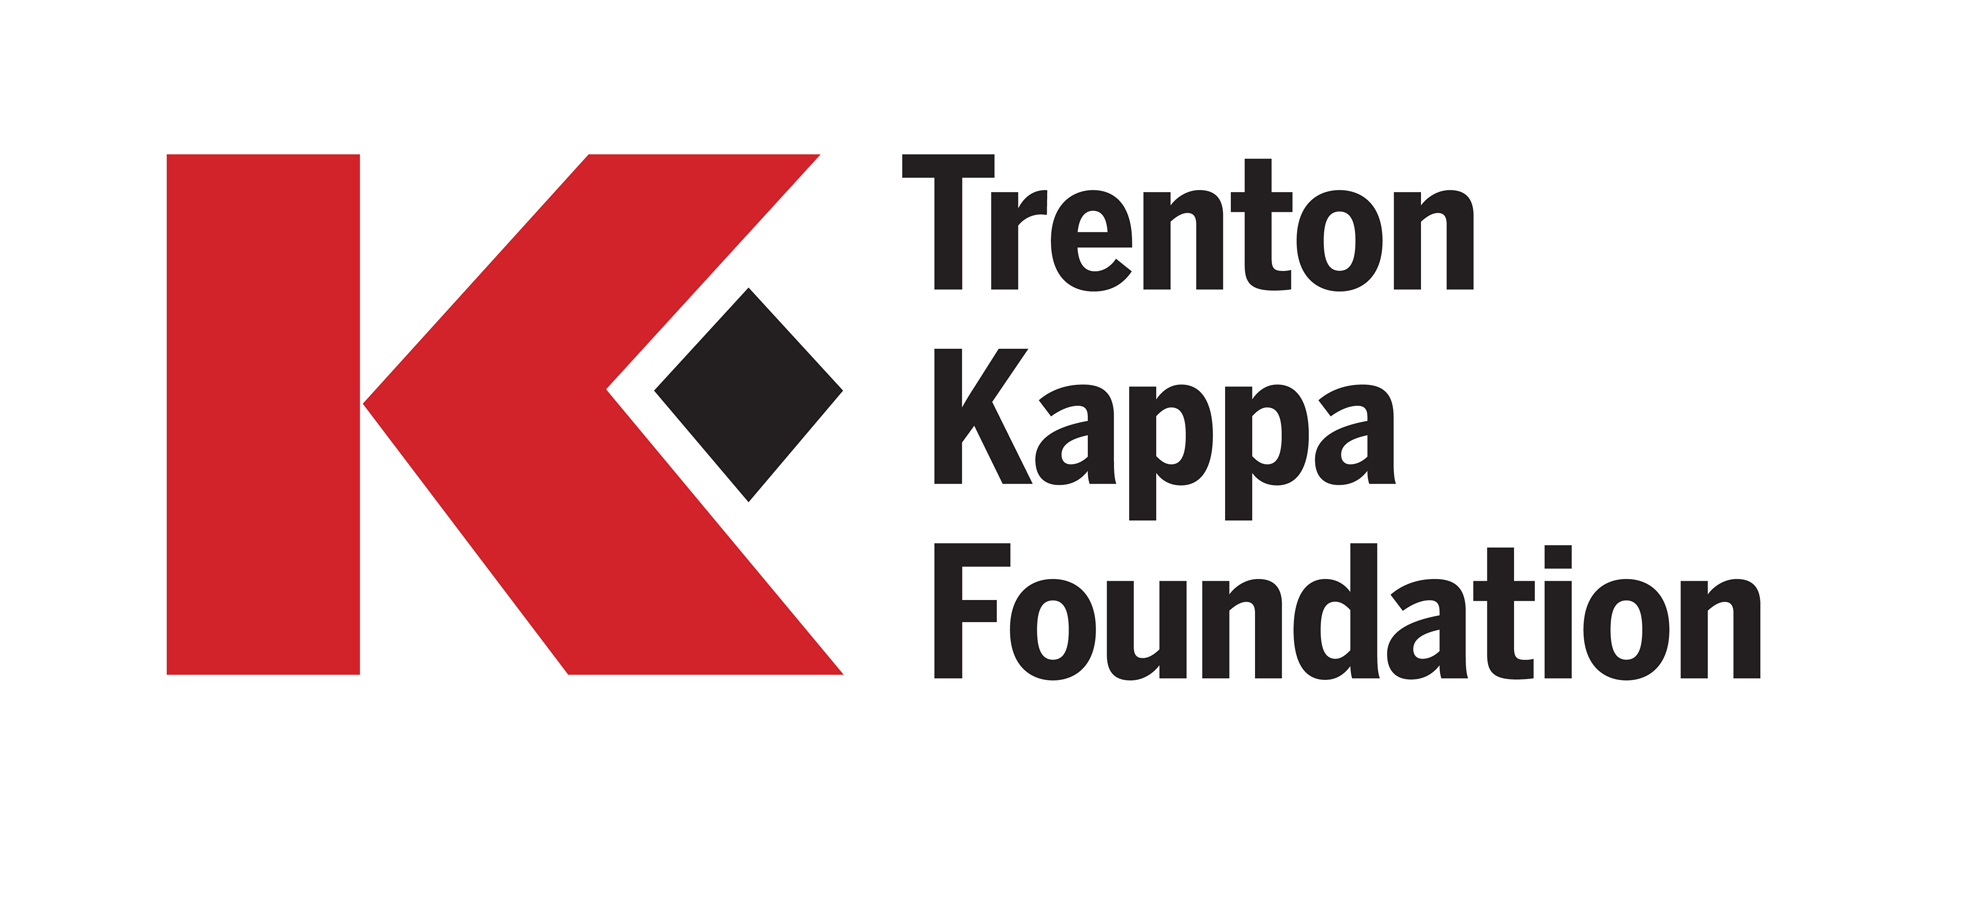 Trenton Kappa Foundation